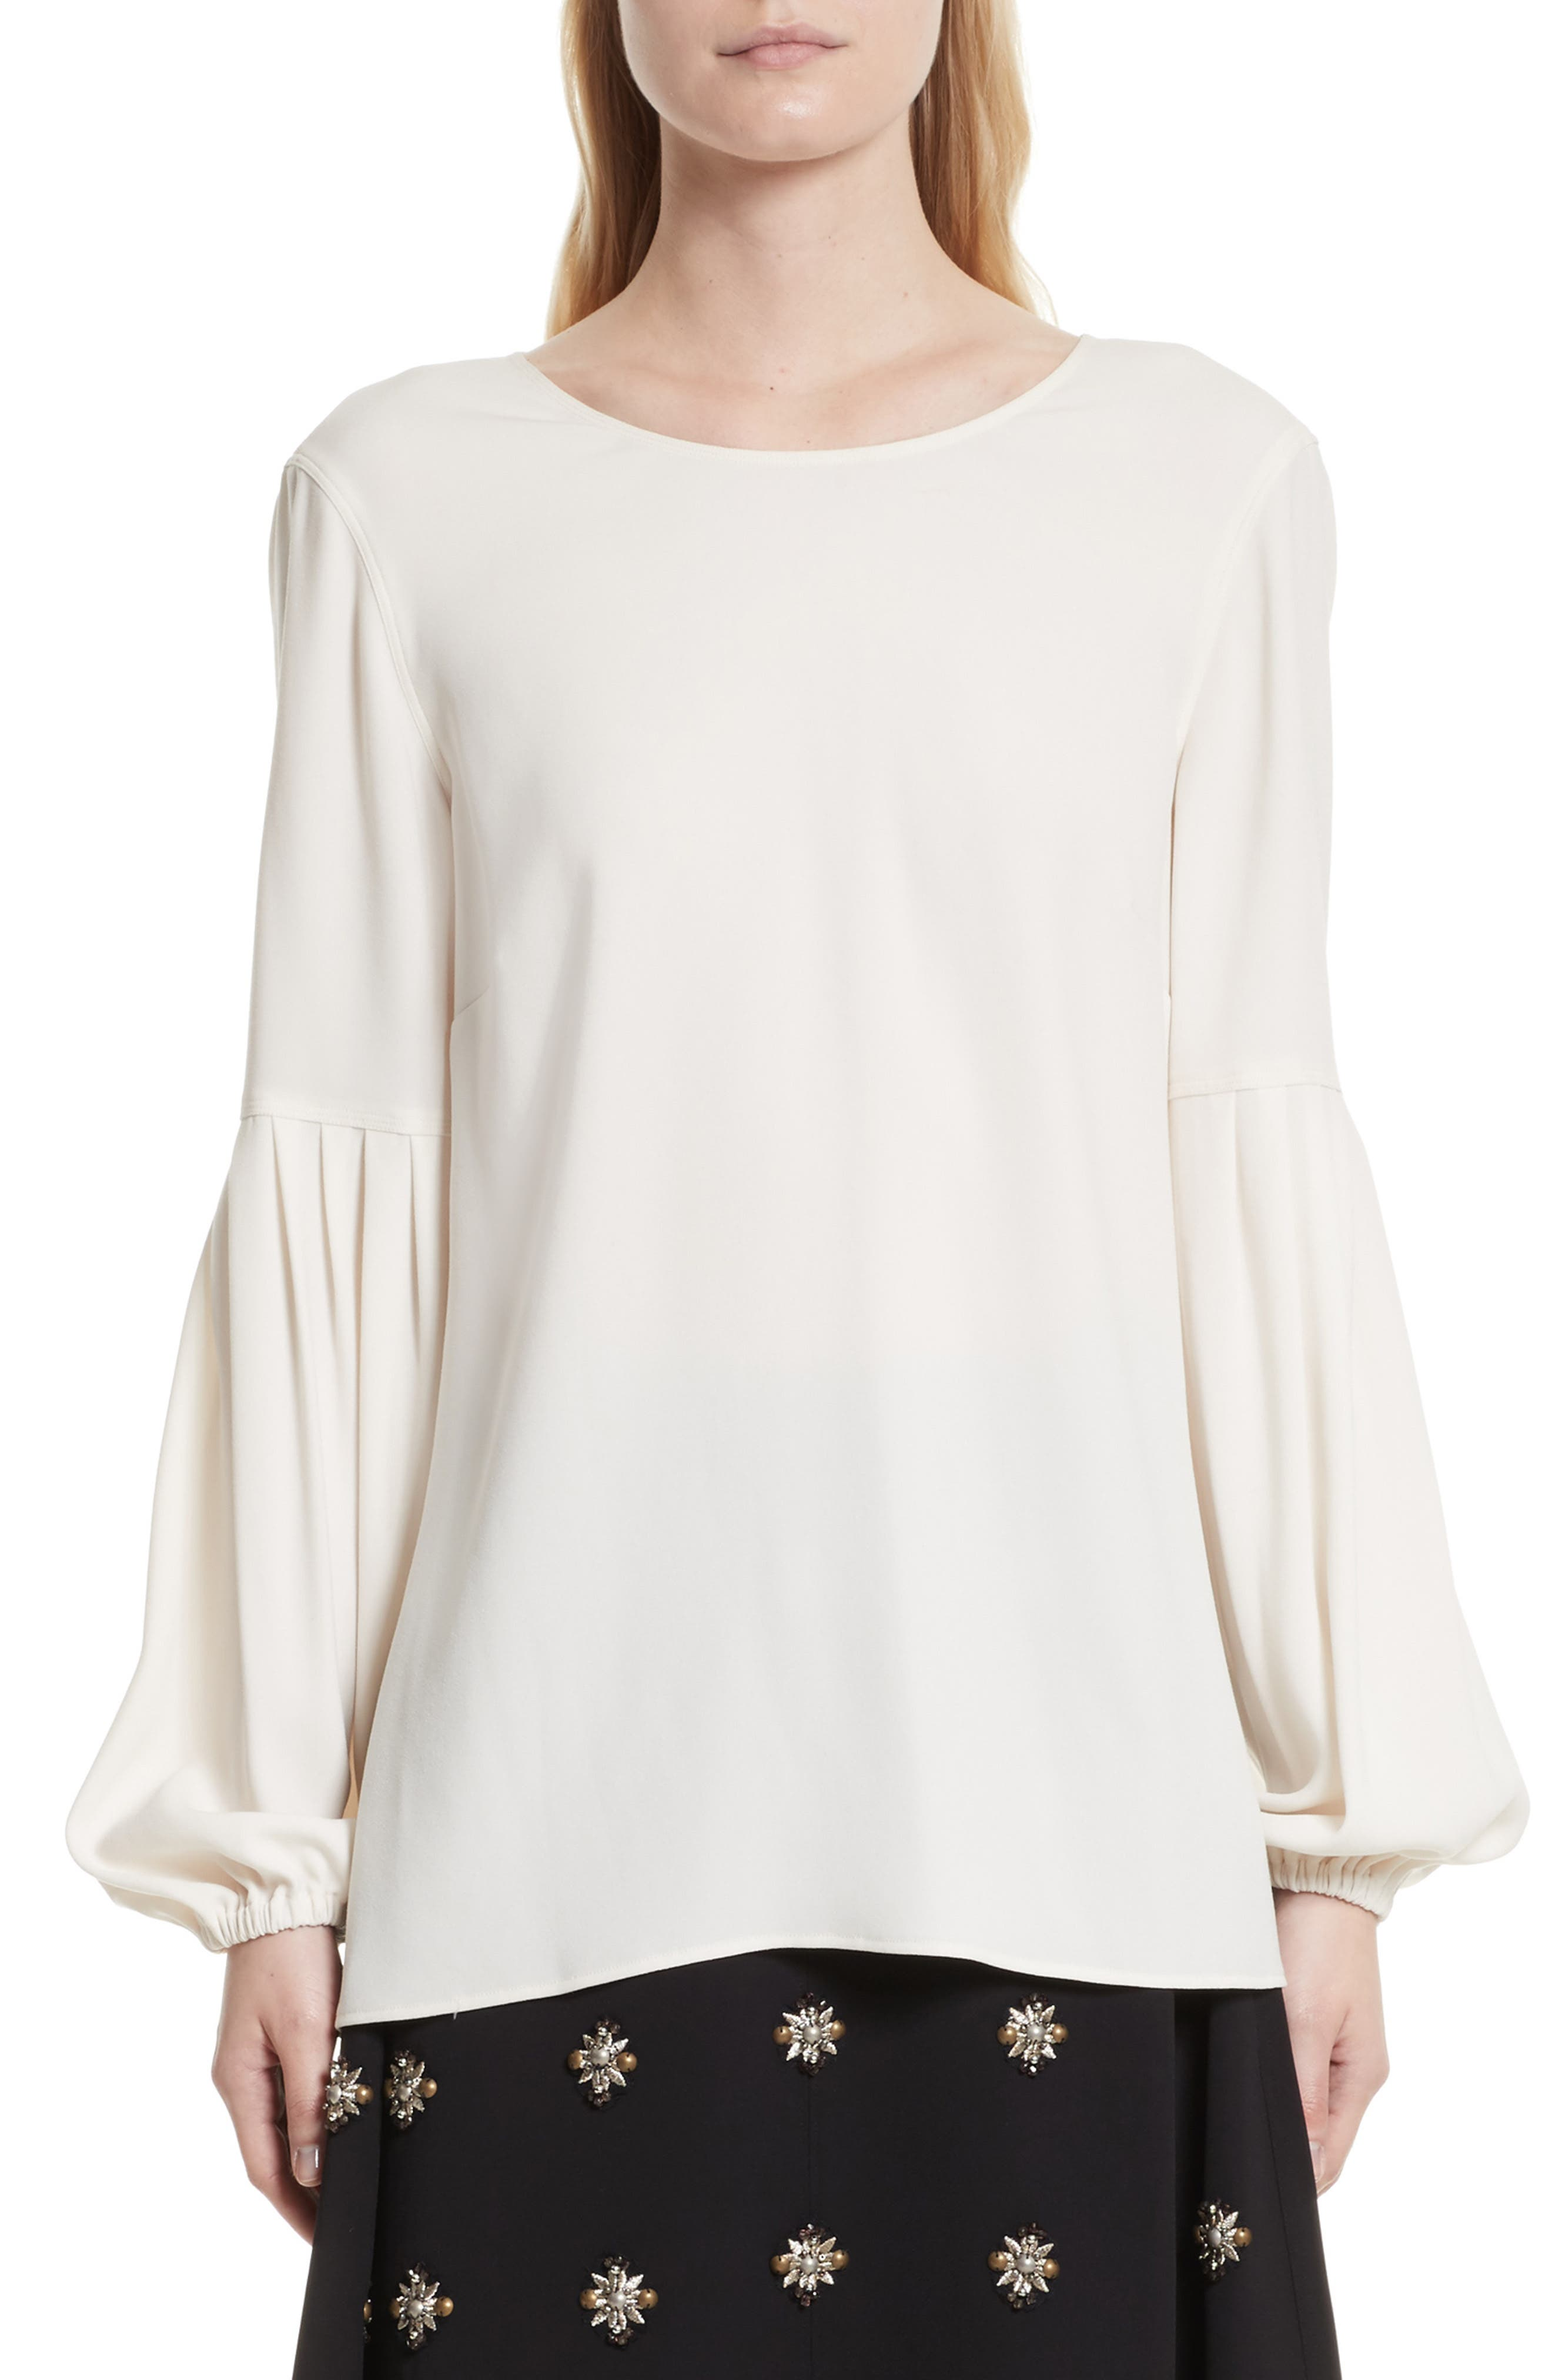 Main Image - Elizabeth and James Harriet Puff Sleeve Blouse